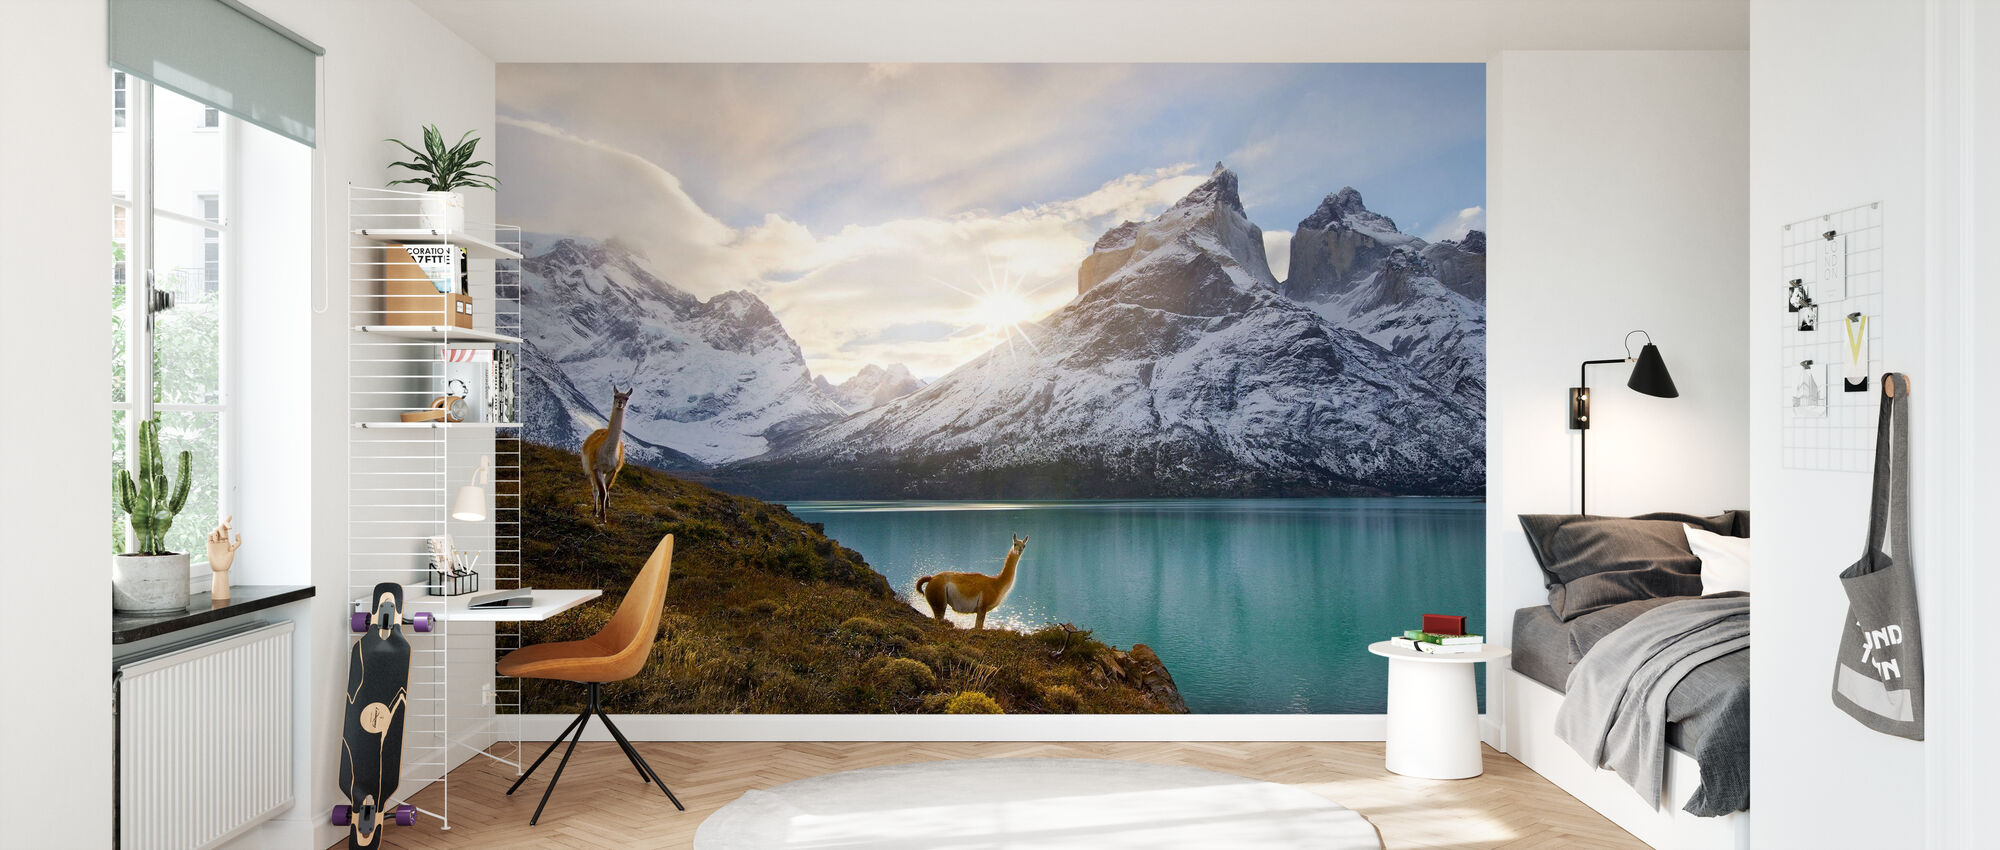 Two Guanacos at Edge of Lake, Torres del Paine National Park - Wallpaper - Kids Room